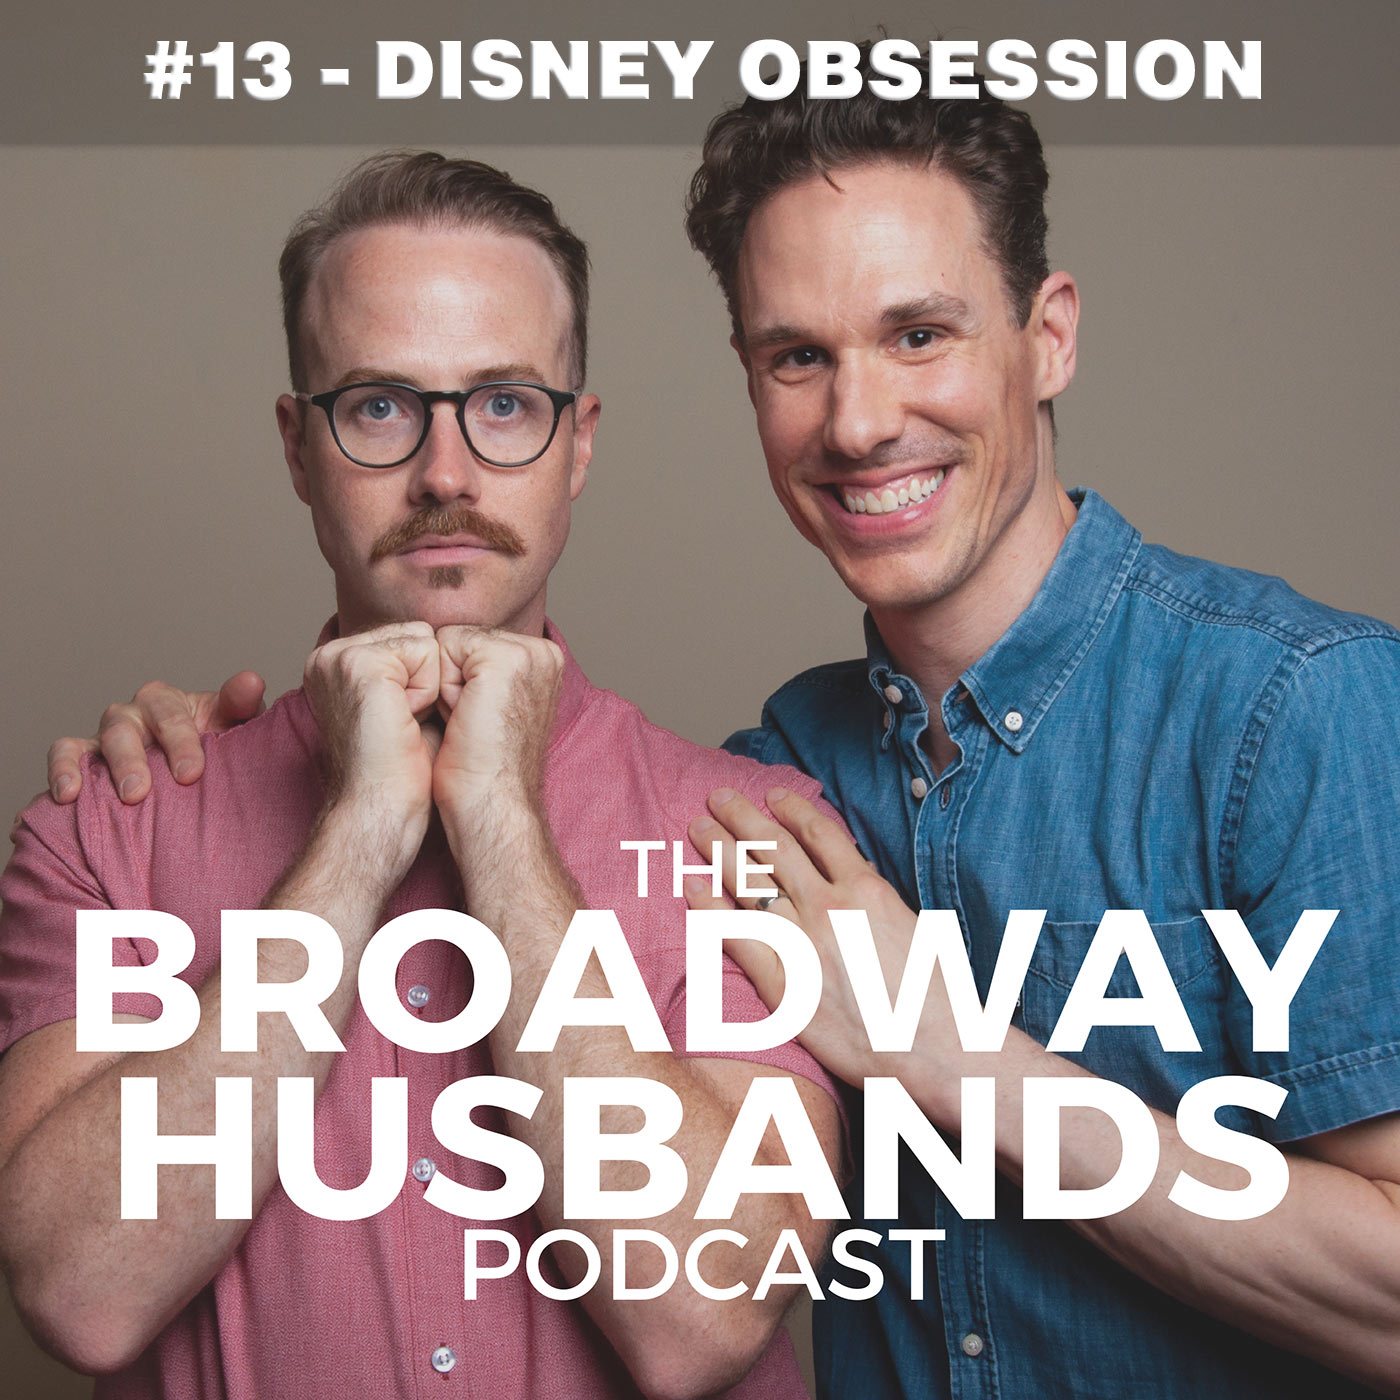 The Broadway Husbands Episode 13 Disney Obsession